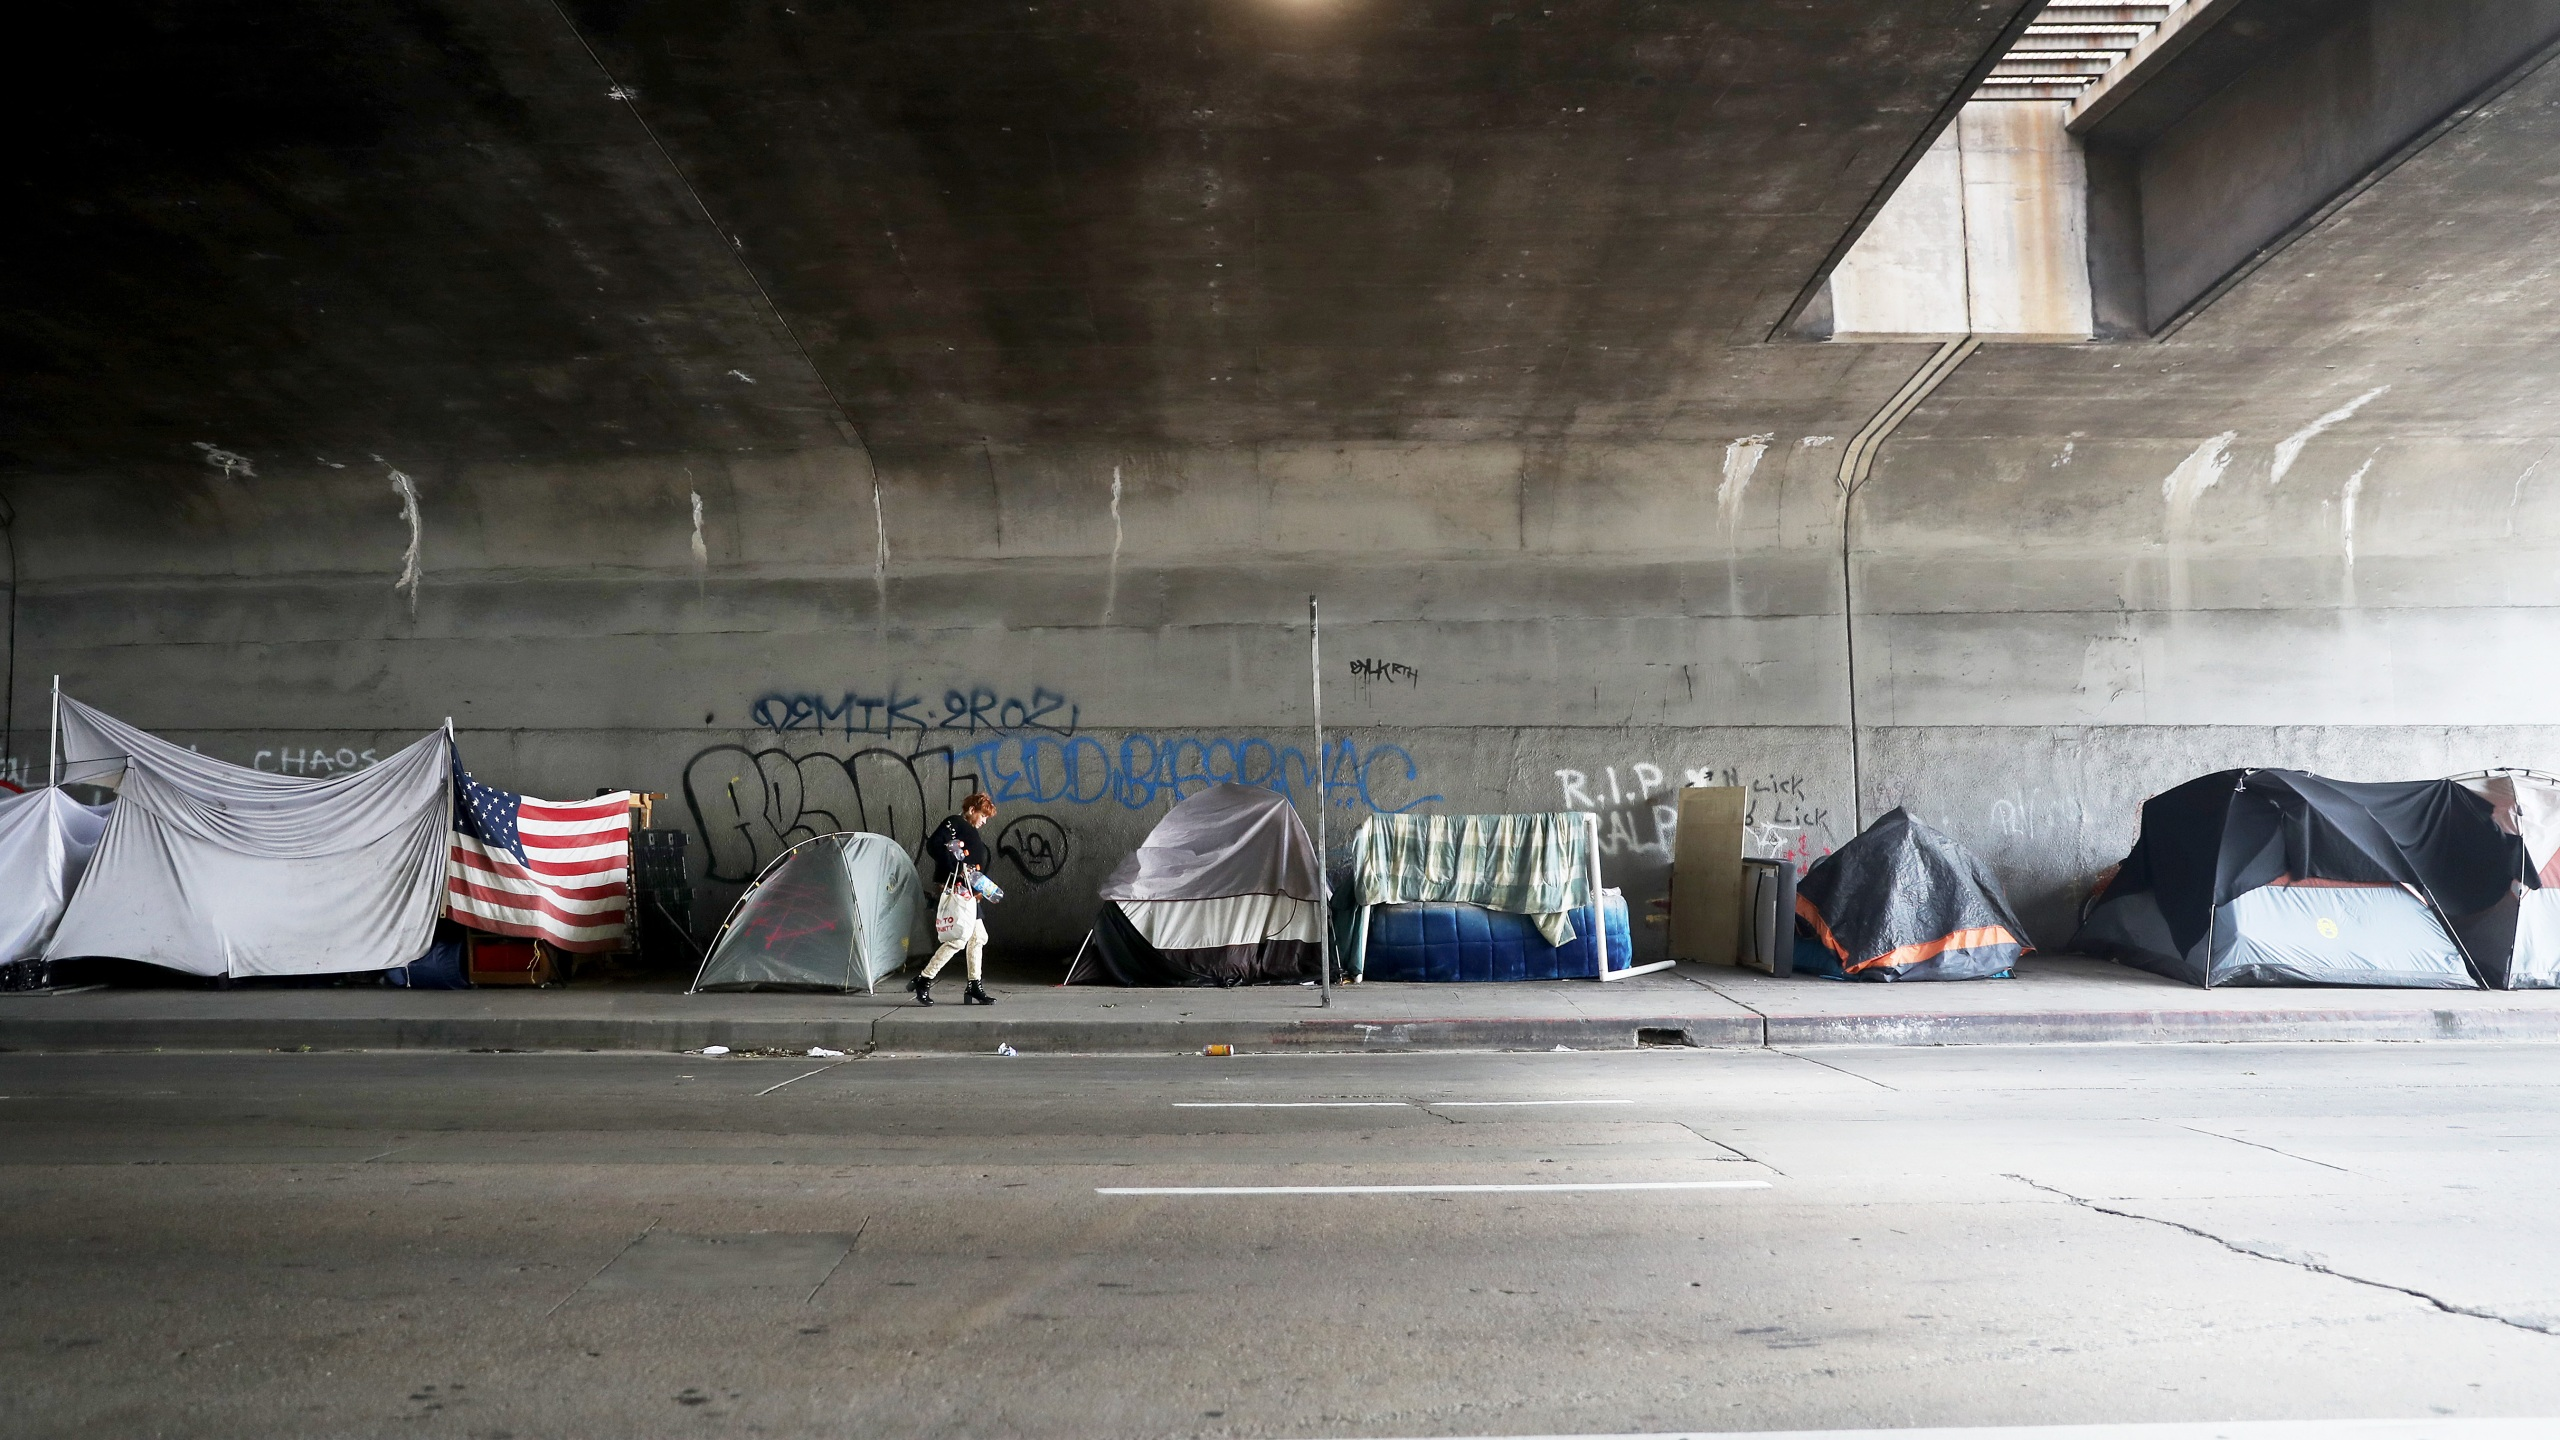 A woman walks past a homeless encampment beneath an overpass in Los Angeles, with an American flag displayed, amid the coronavirus pandemic on April 4, 2020. (Credit: Mario Tama / Getty Images)